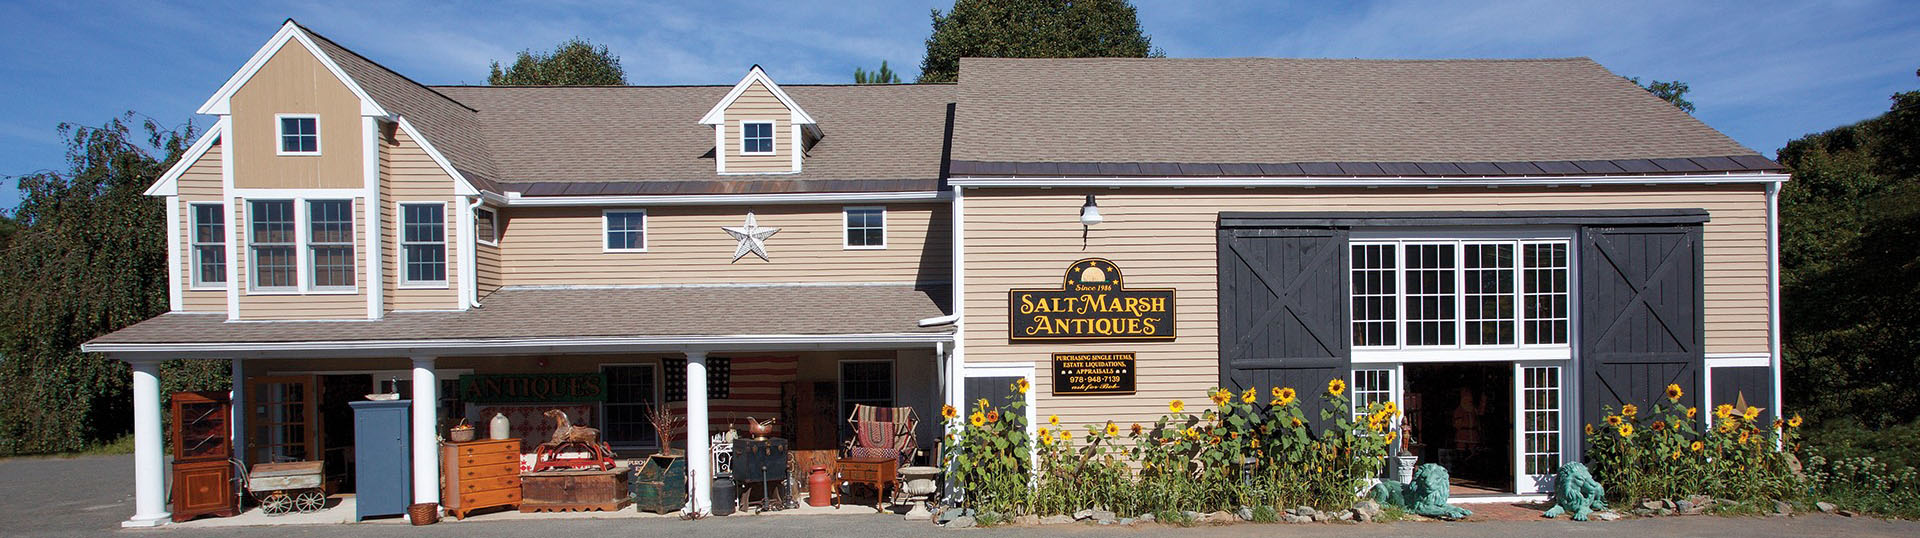 Salt Marsh Antiques North - Shore, Rowley MA